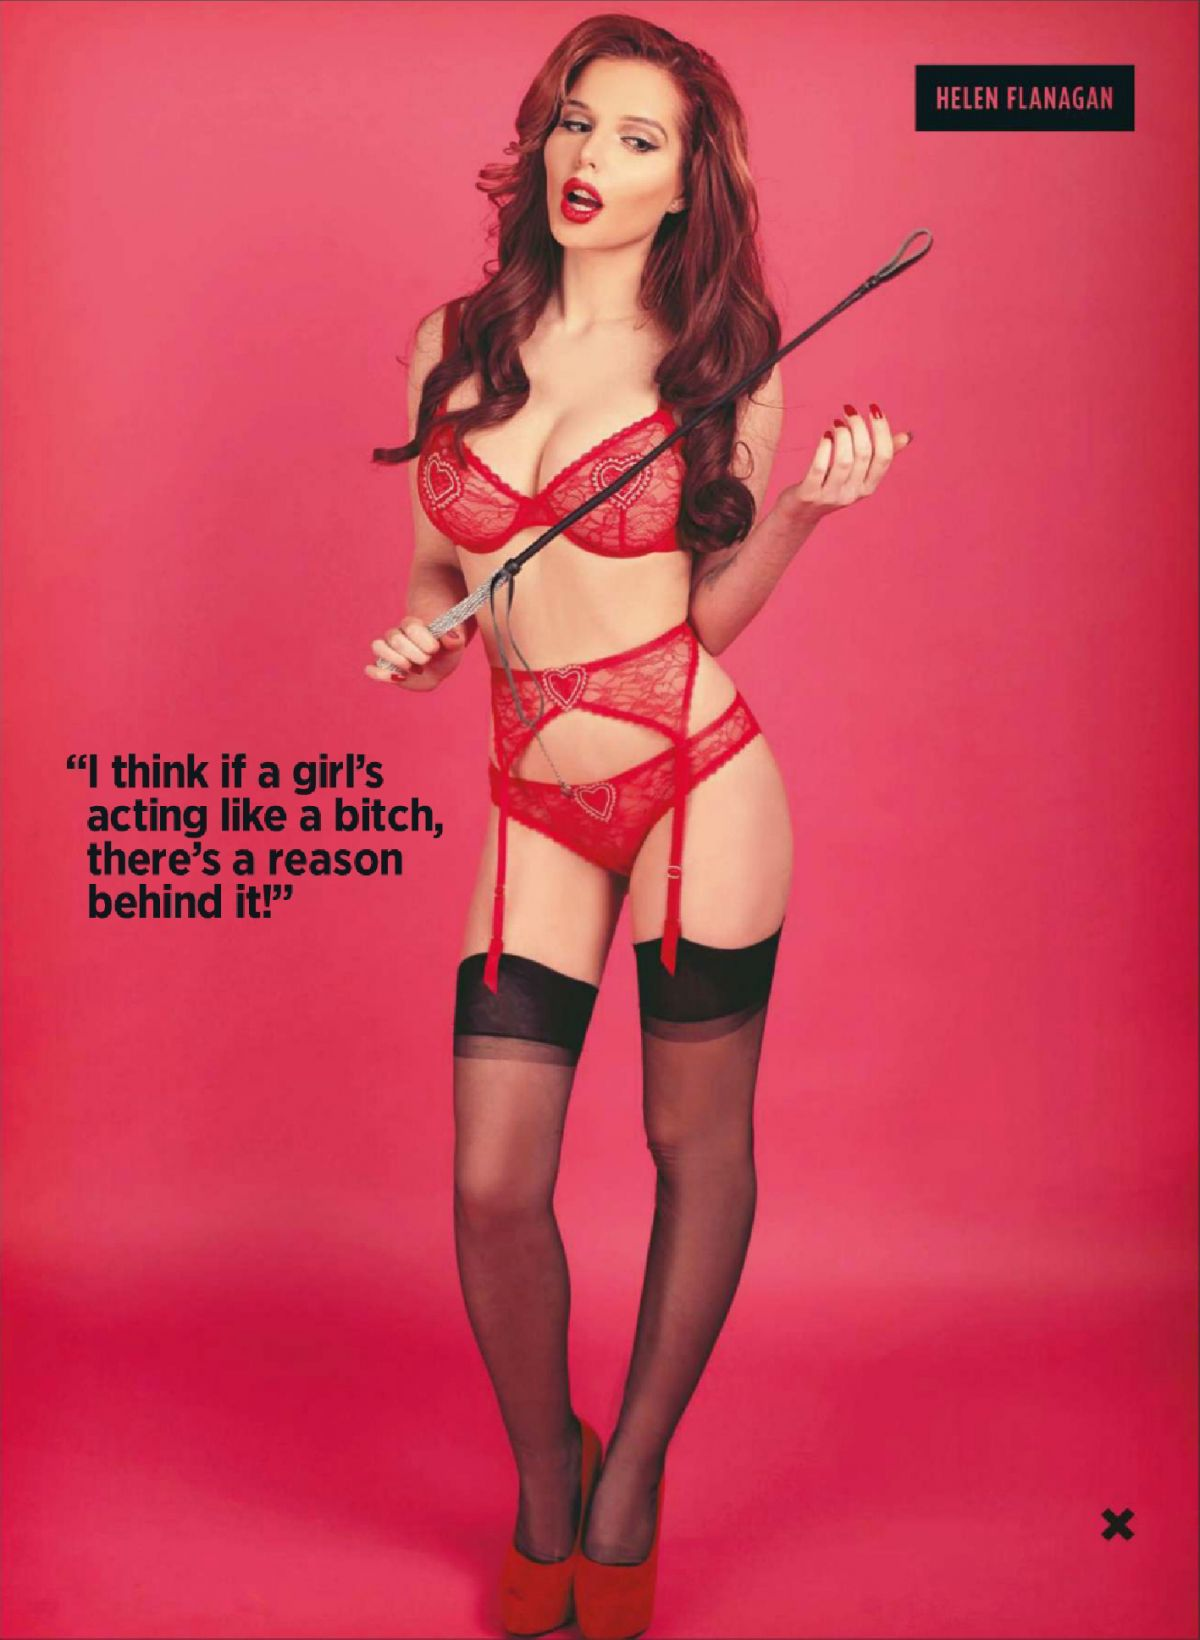 Helen Flanagan Calendar 2014 with actresses who look good from 18 to 39 - page 677 - blu-ray forum